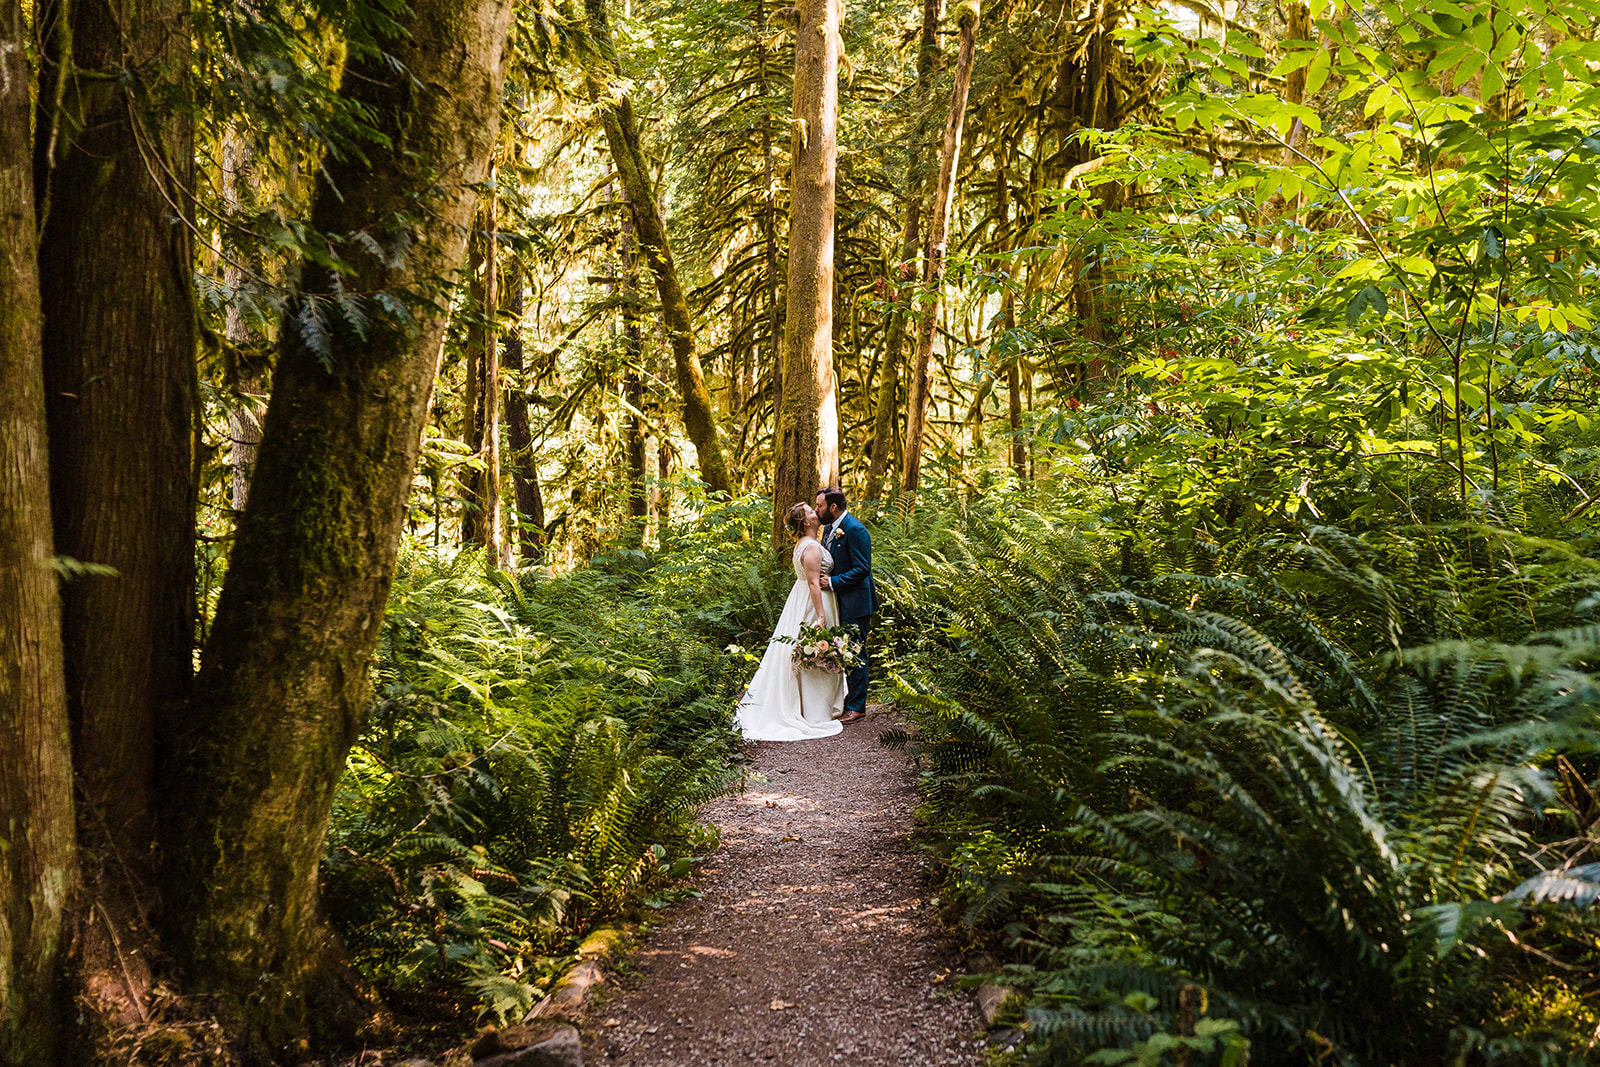 A bride and groom stand in a trail, surrounded by ferns and mossy trees